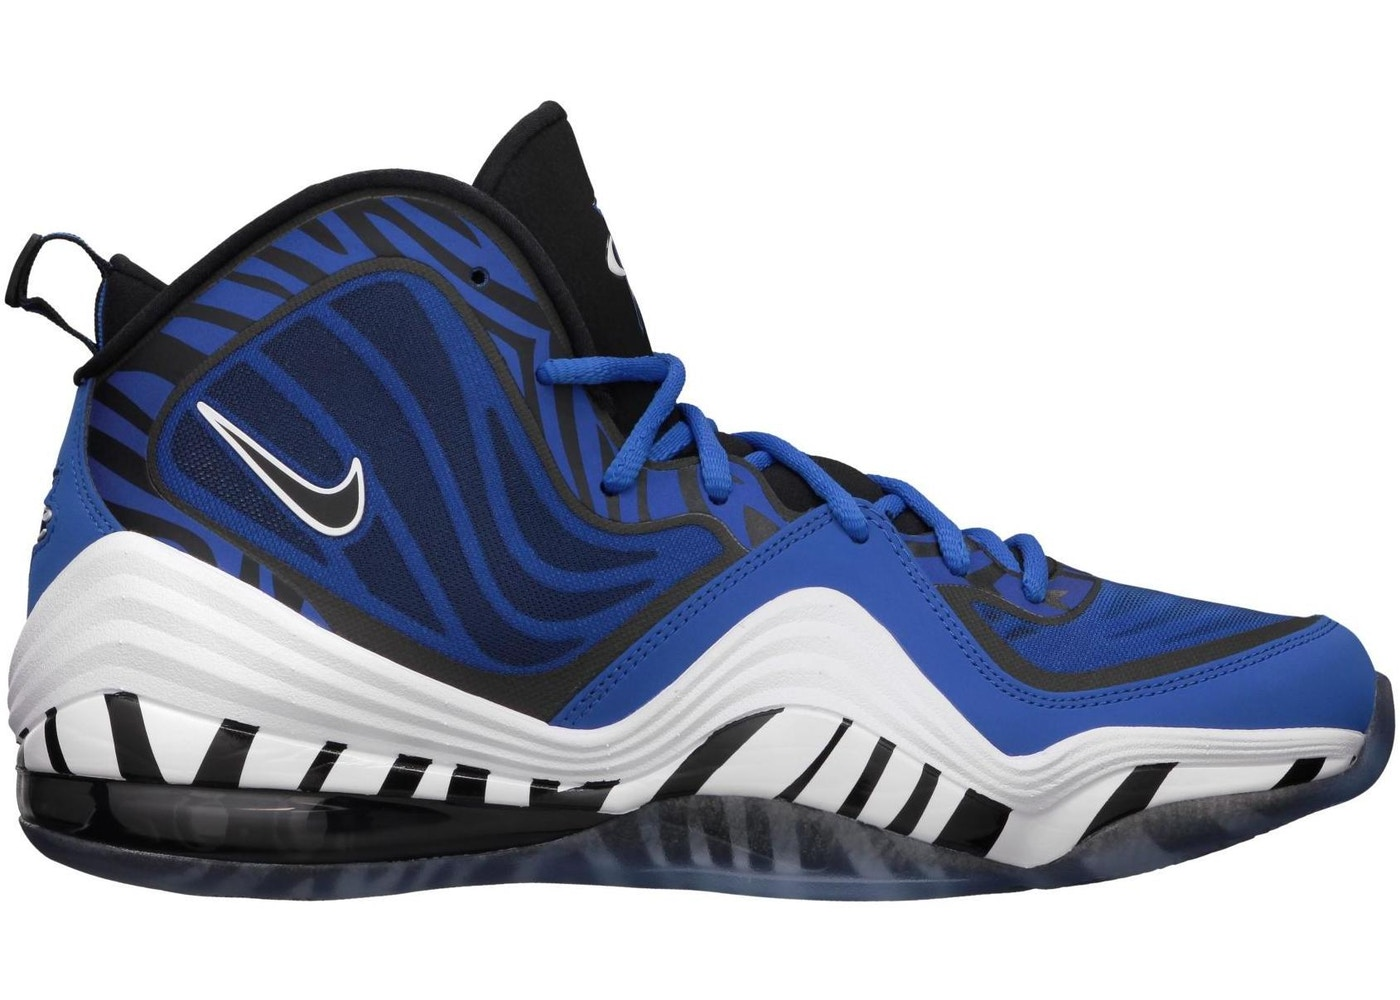 sports shoes 4ebf2 00d3d Buy Nike Basketball Penny Shoes   Deadstock Sneakers